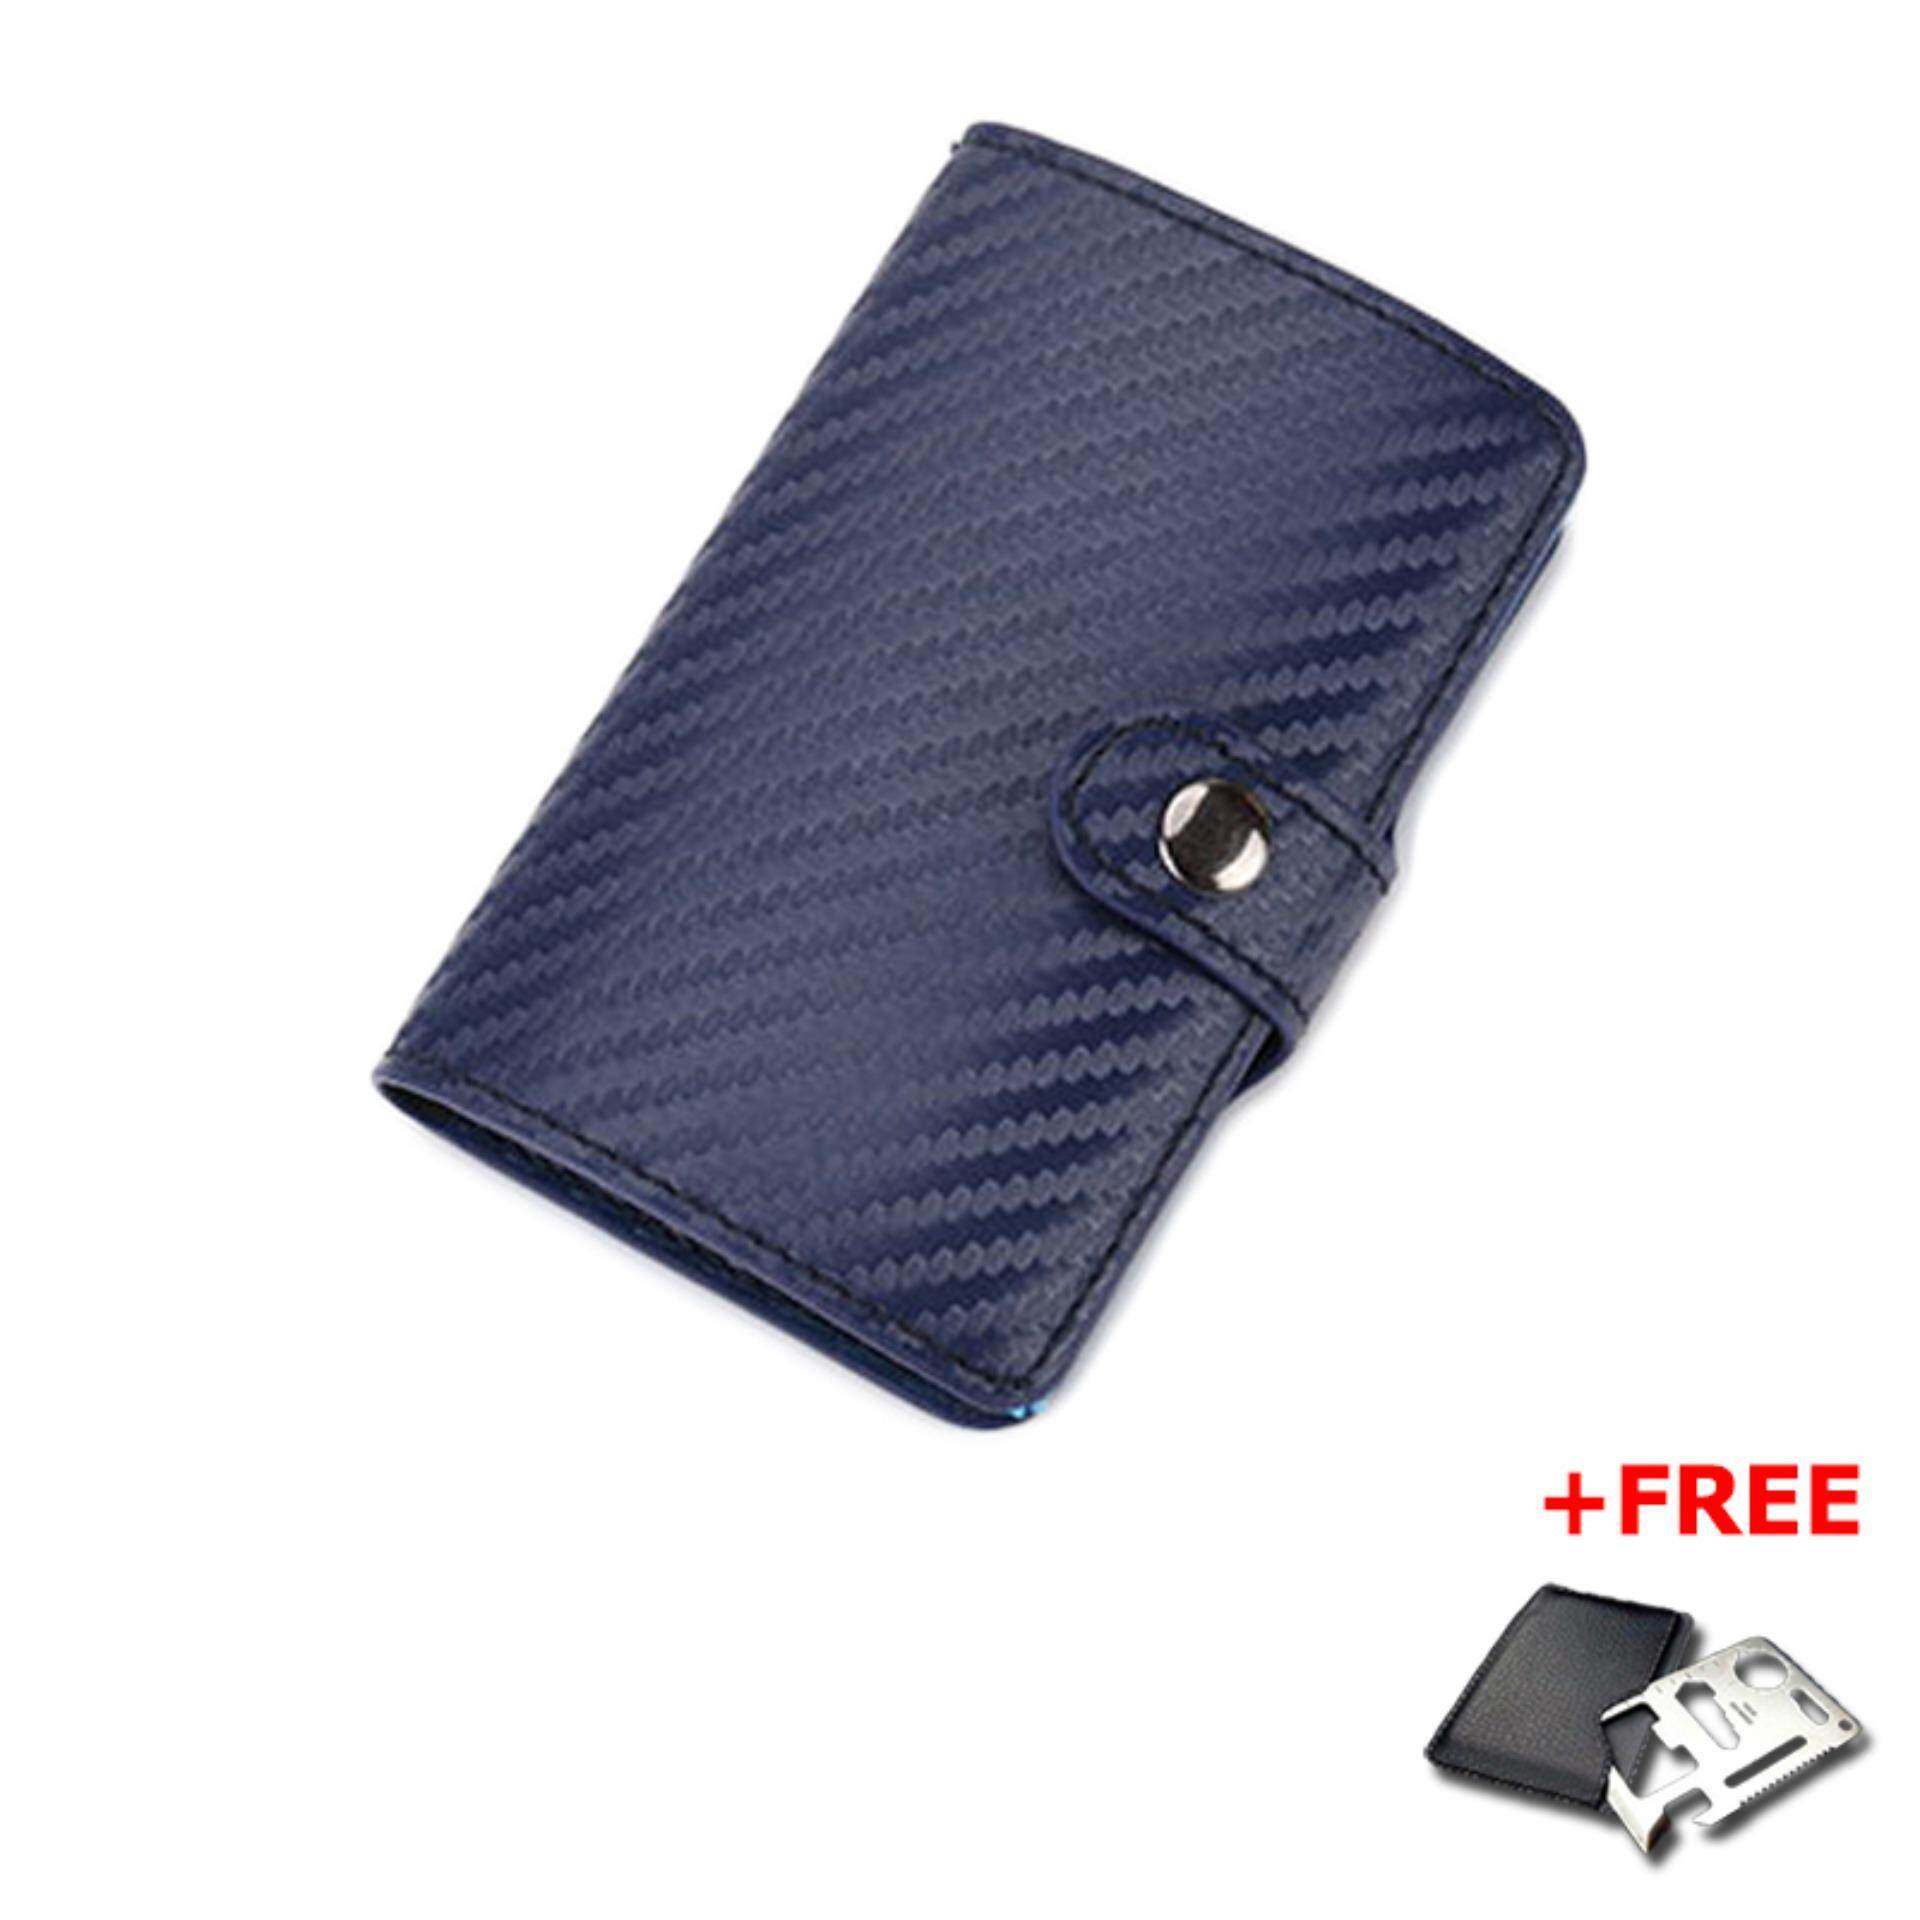 Slim Carbon Fiber Credit Card Holder RFID Non-scan Metal Simple Wallet Money Case Card Organizer MI3184